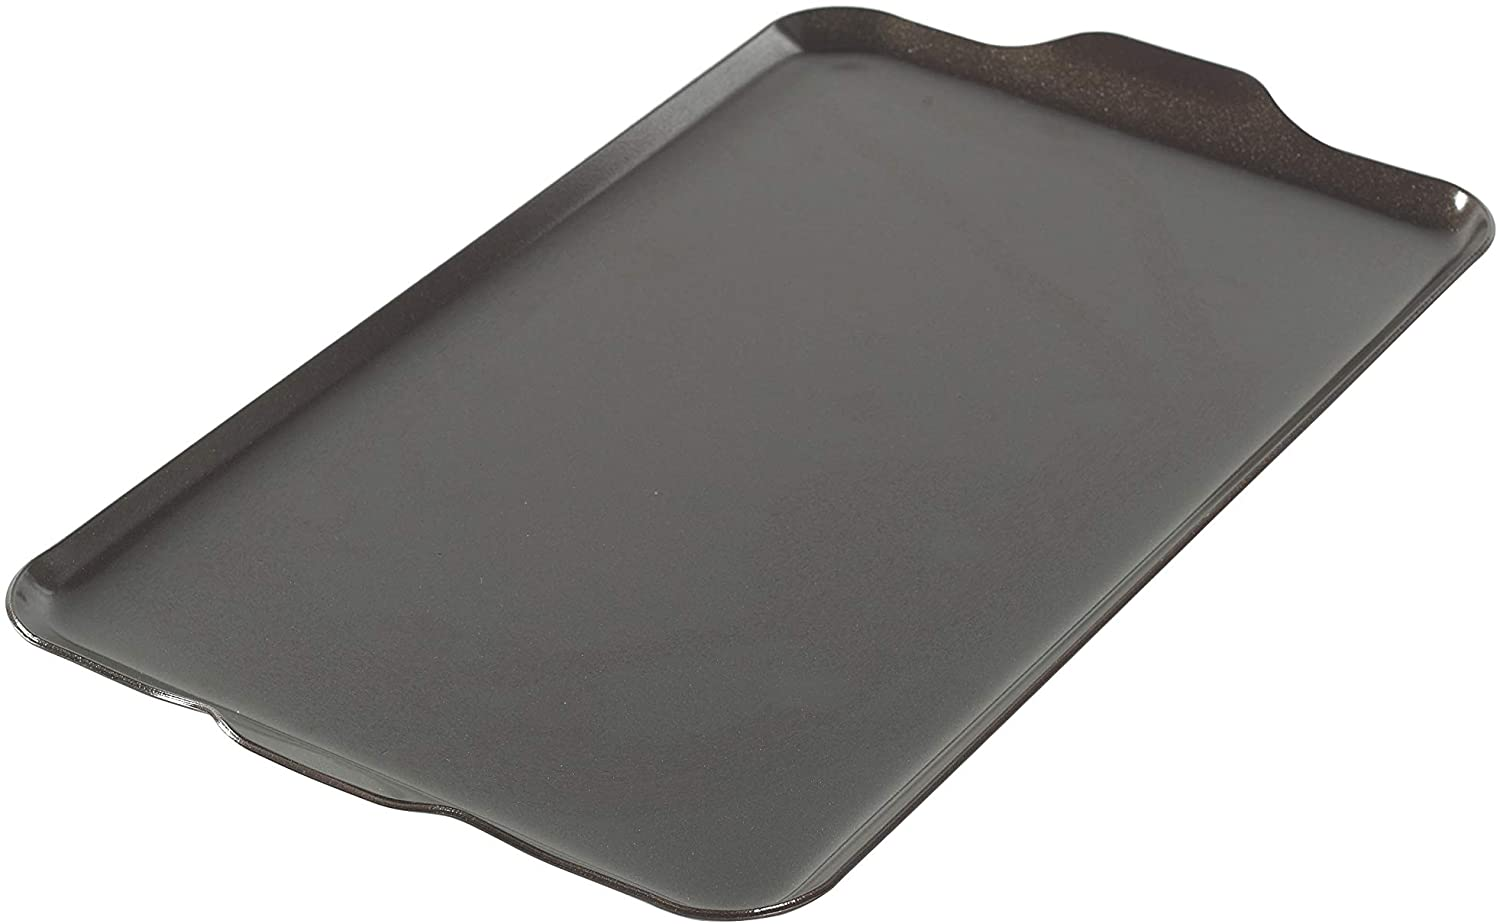 Best non-stick griddle for induction: Nordic Ware Two